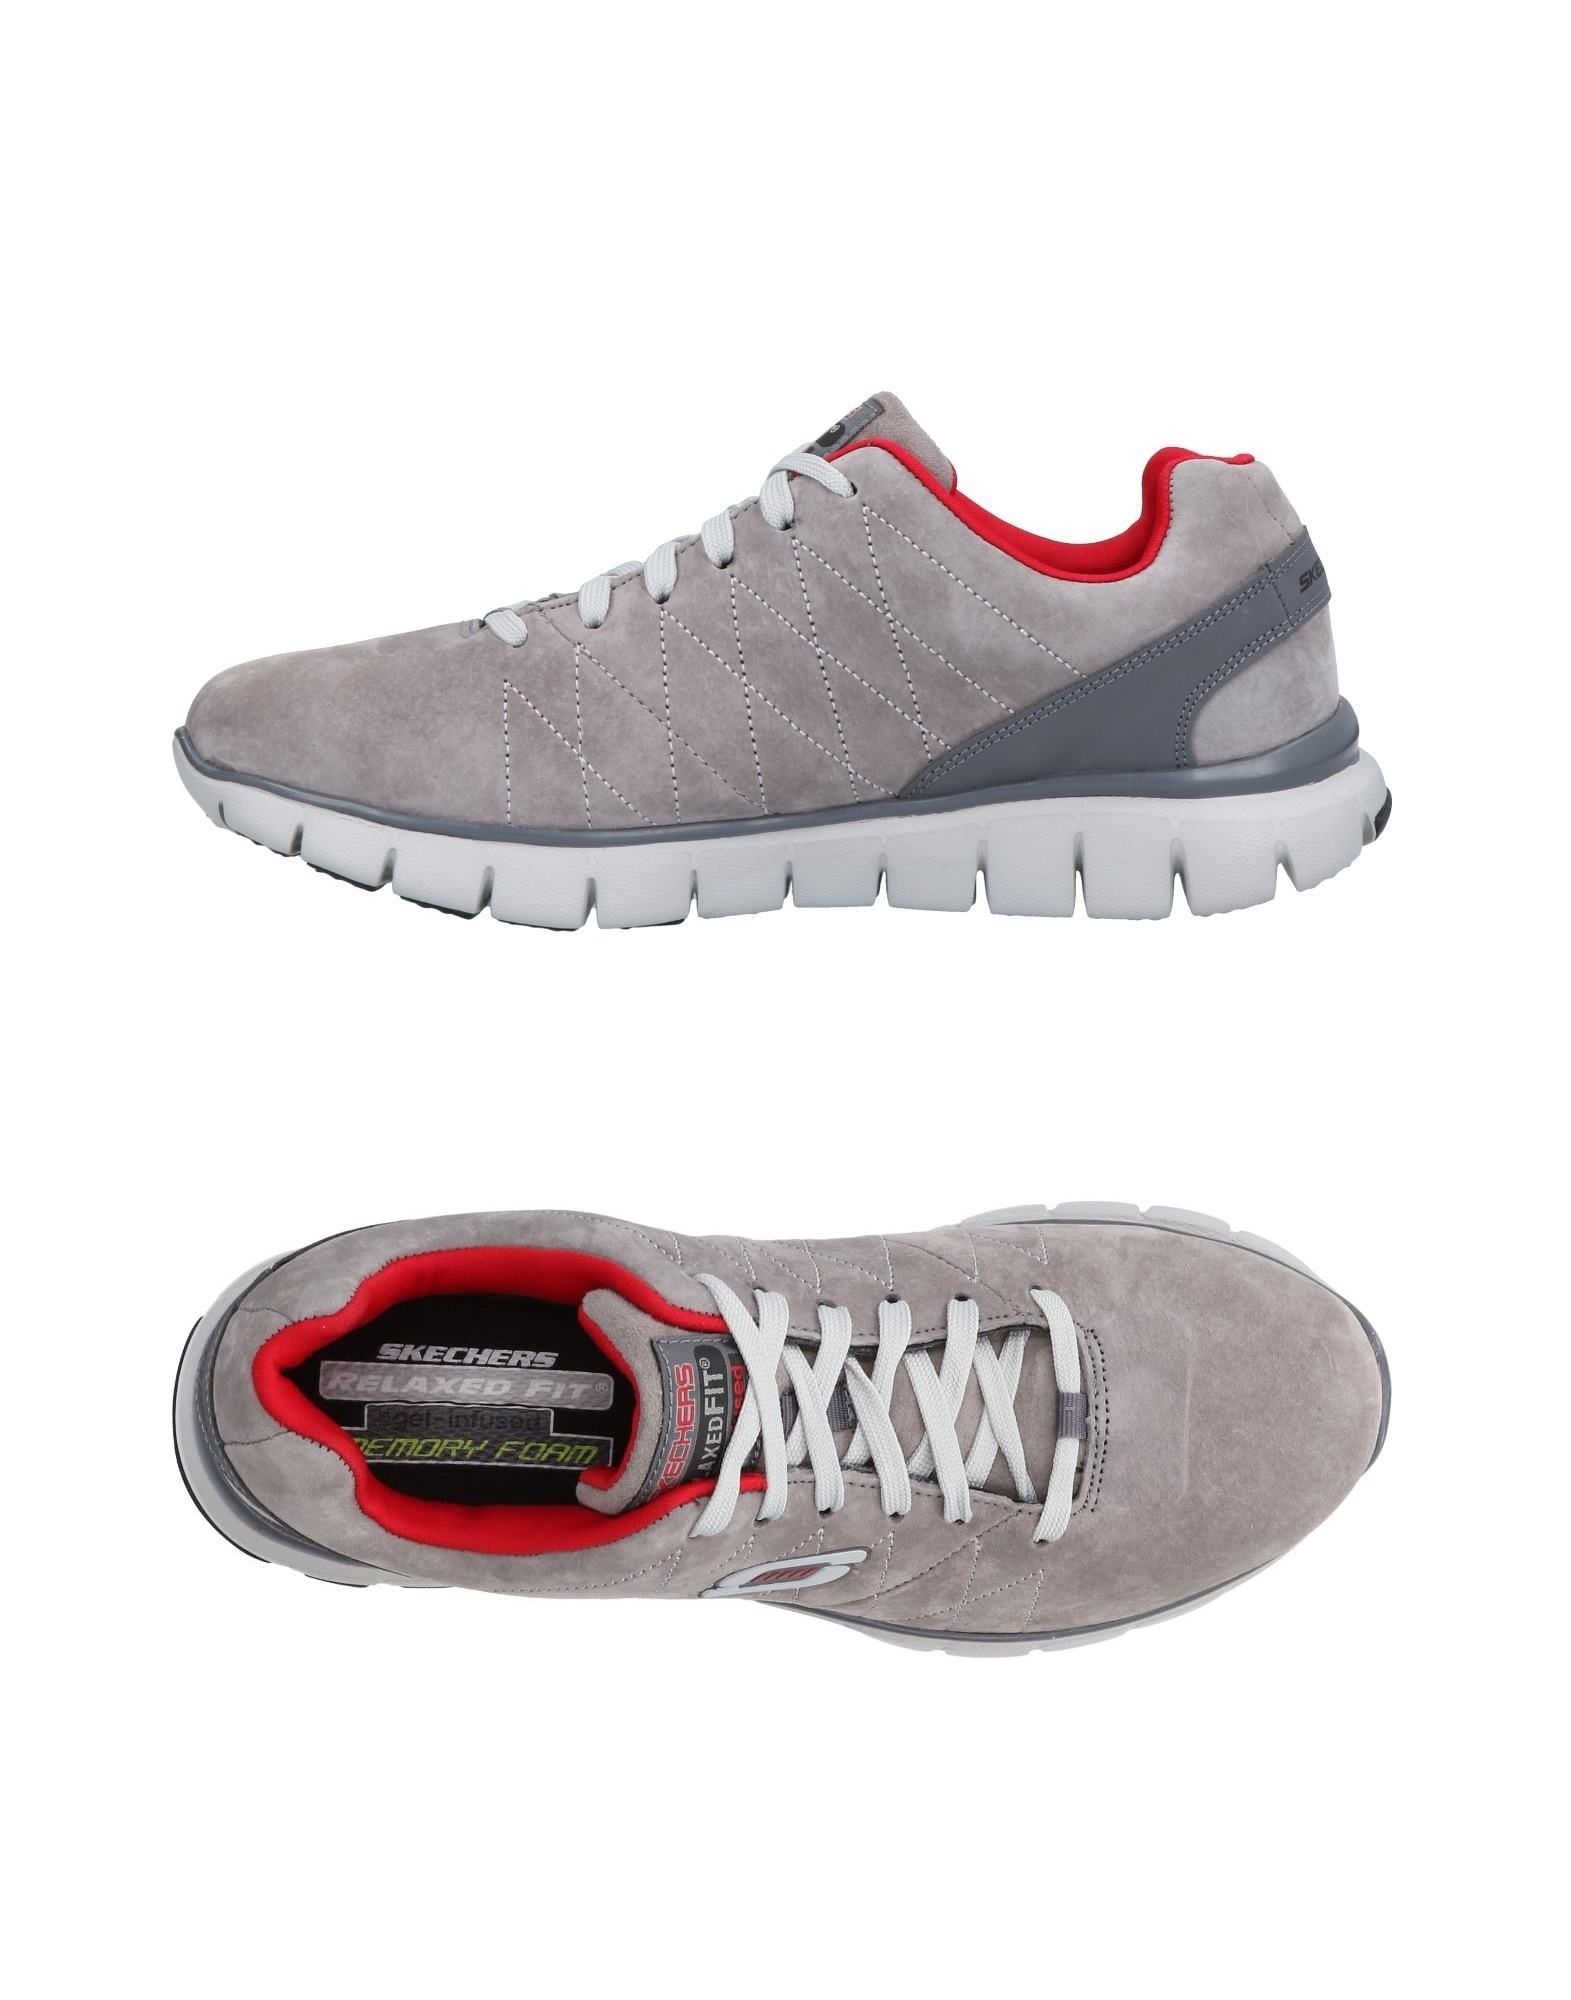 73193d53b25f Skechers Sneakers - Men Skechers Sneakers online on YOOX Portugal -  11462938PM